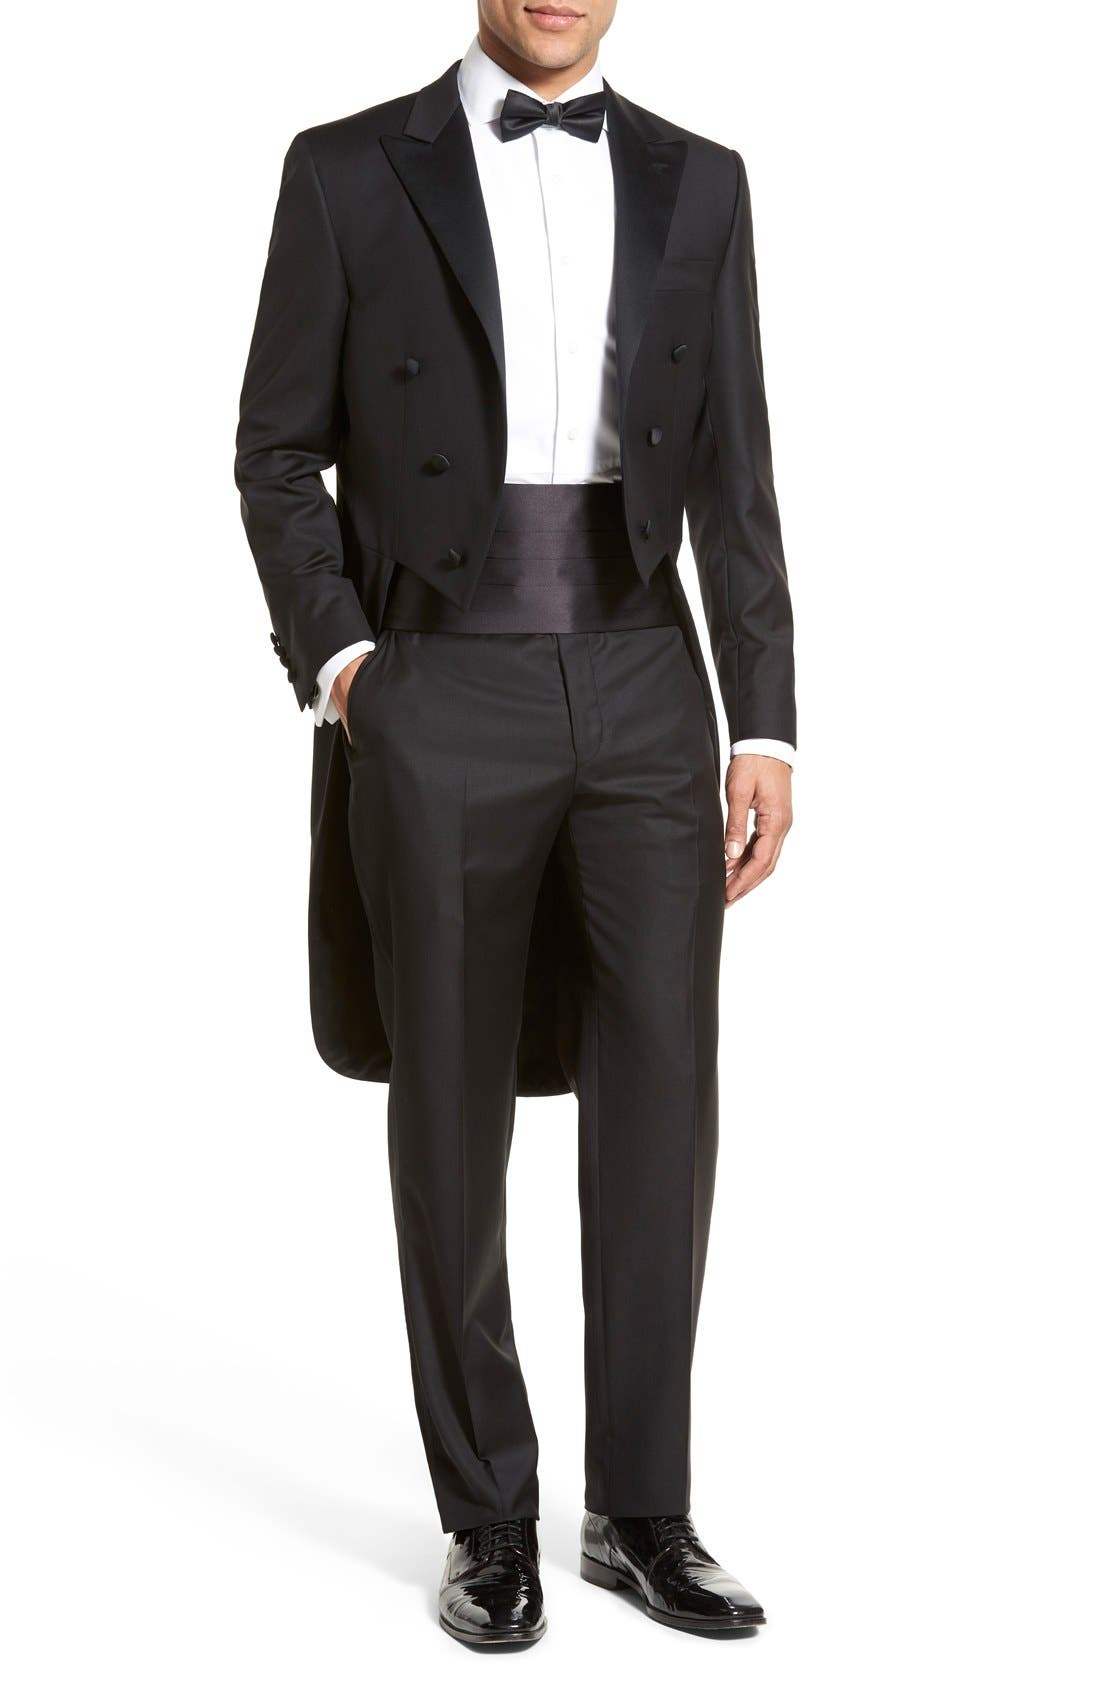 Hickey Freeman Classic B Fit Tasmanian Wool Tailcoat Tuxedo